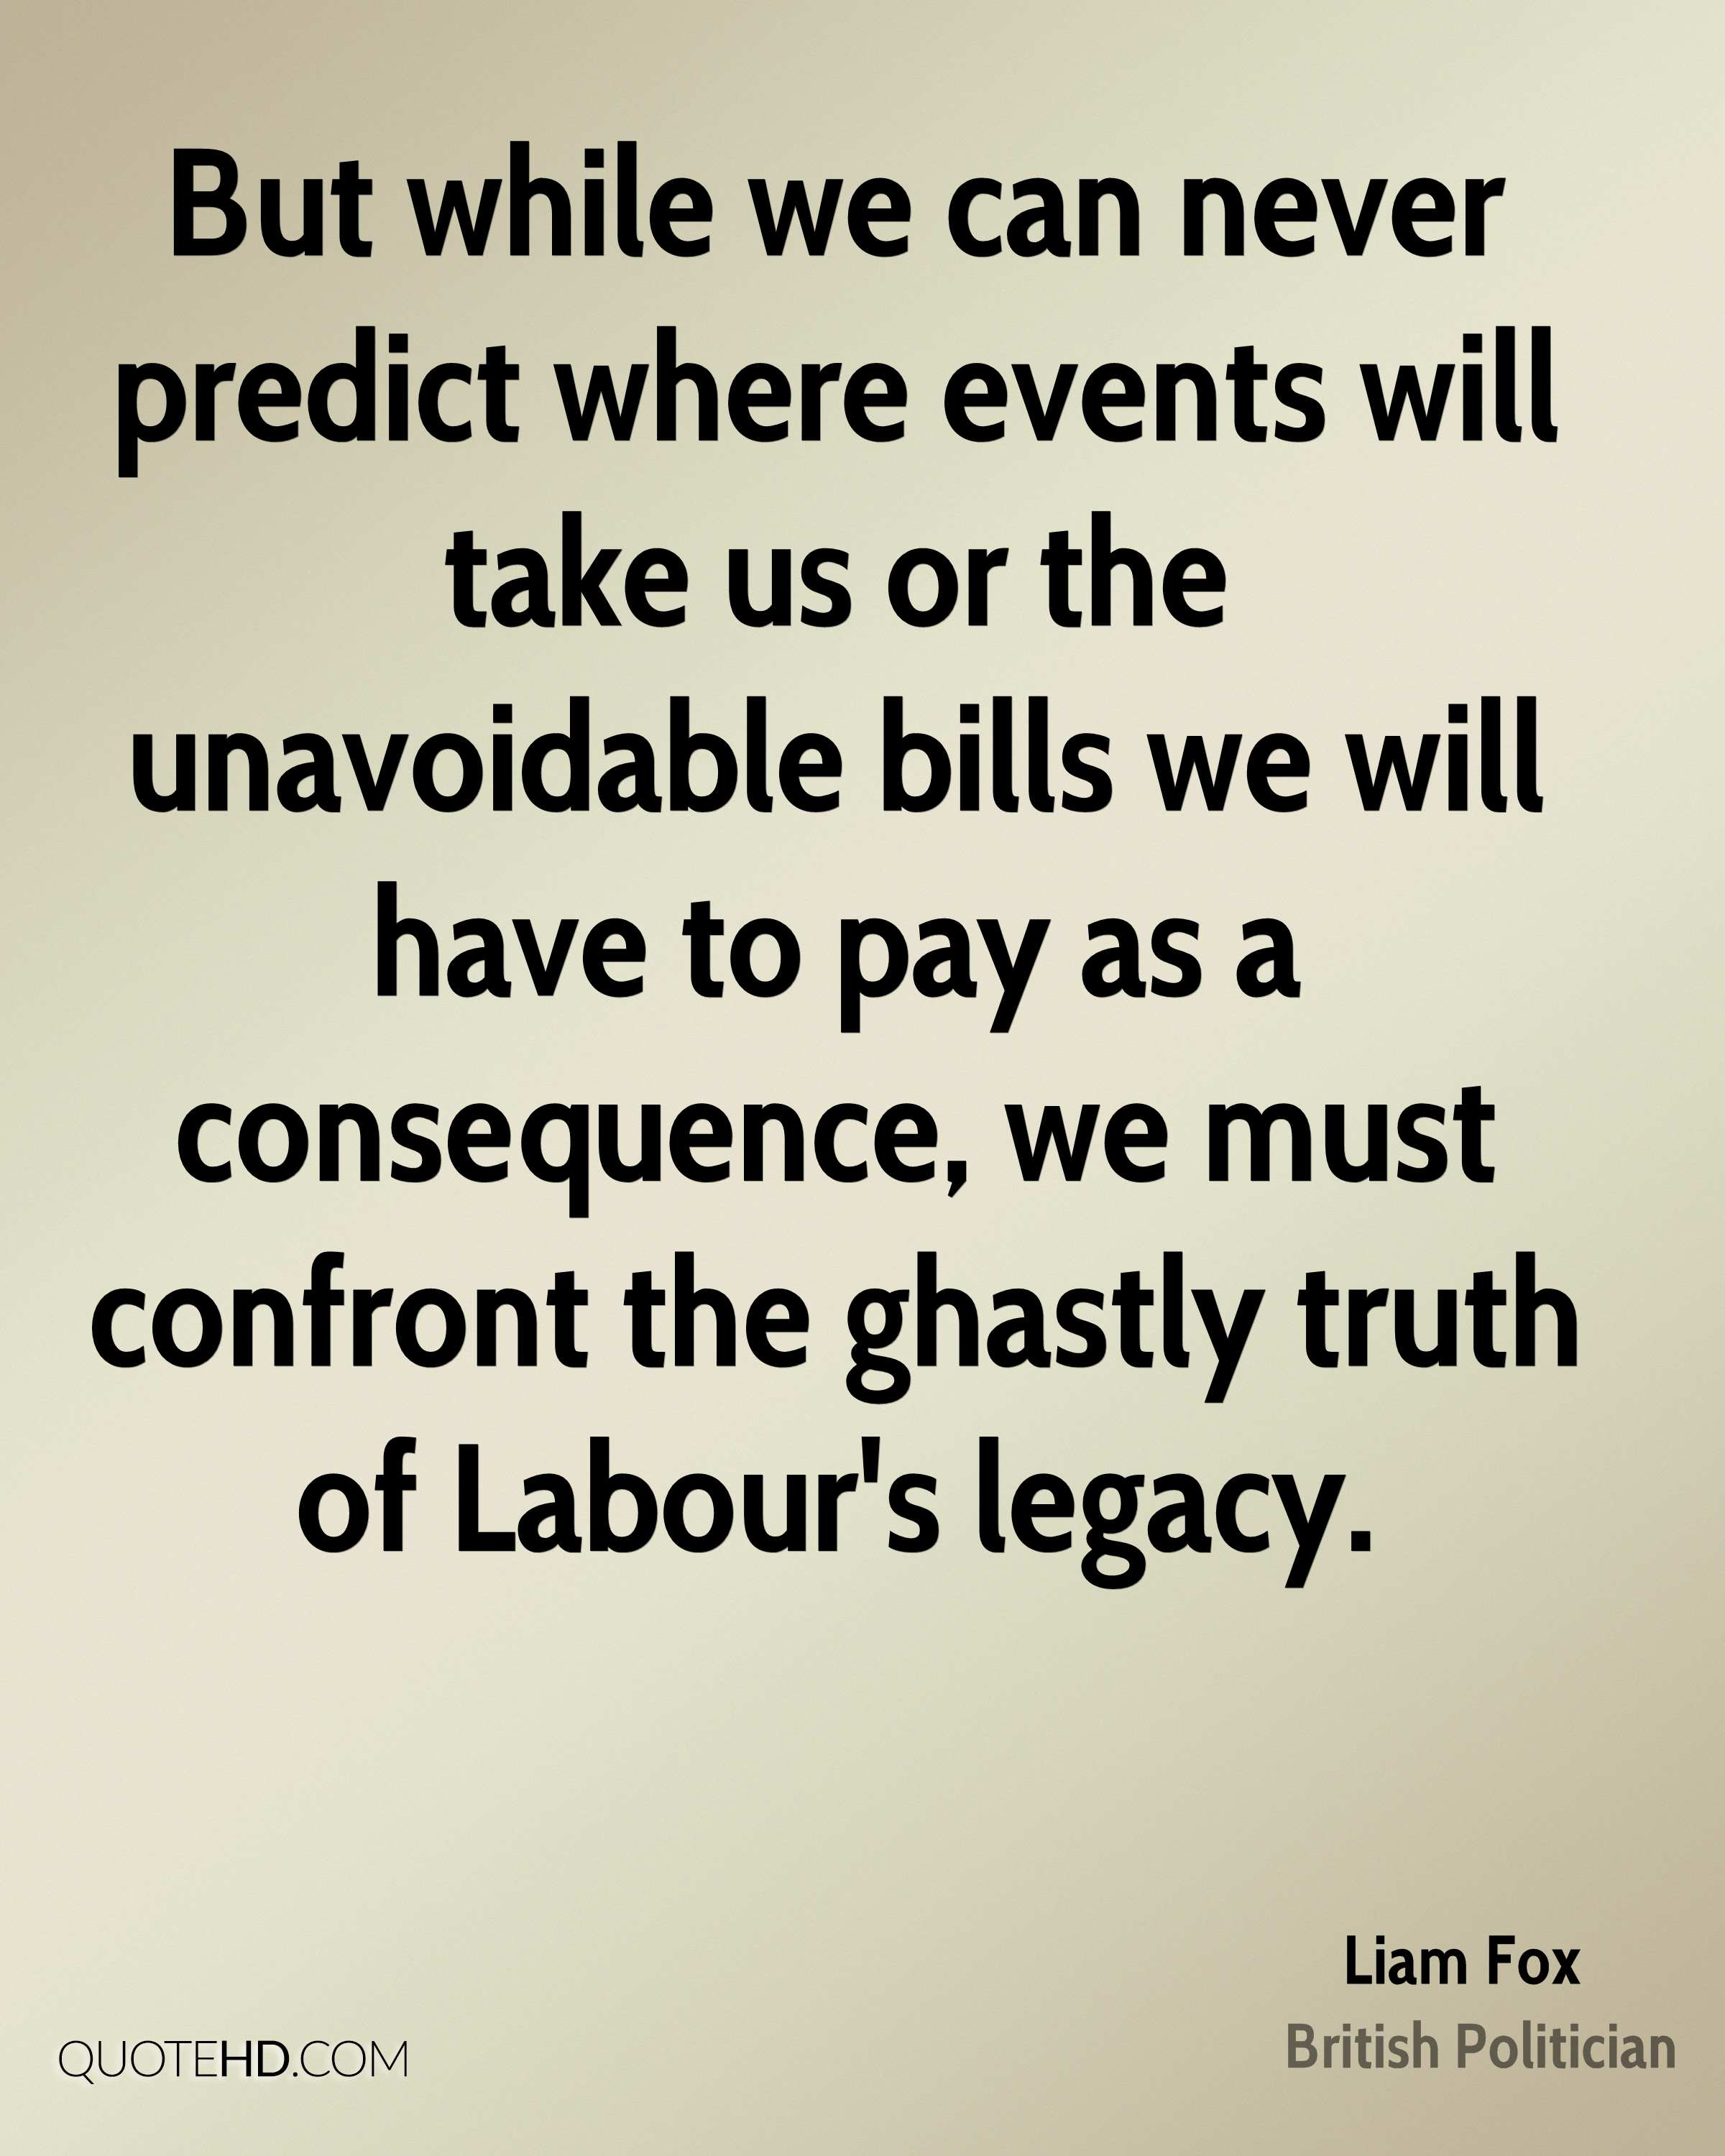 But while we can never predict where events will take us or the unavoidable bills we will have to pay as a consequence, we must confront the ghastly truth of Labour's legacy.